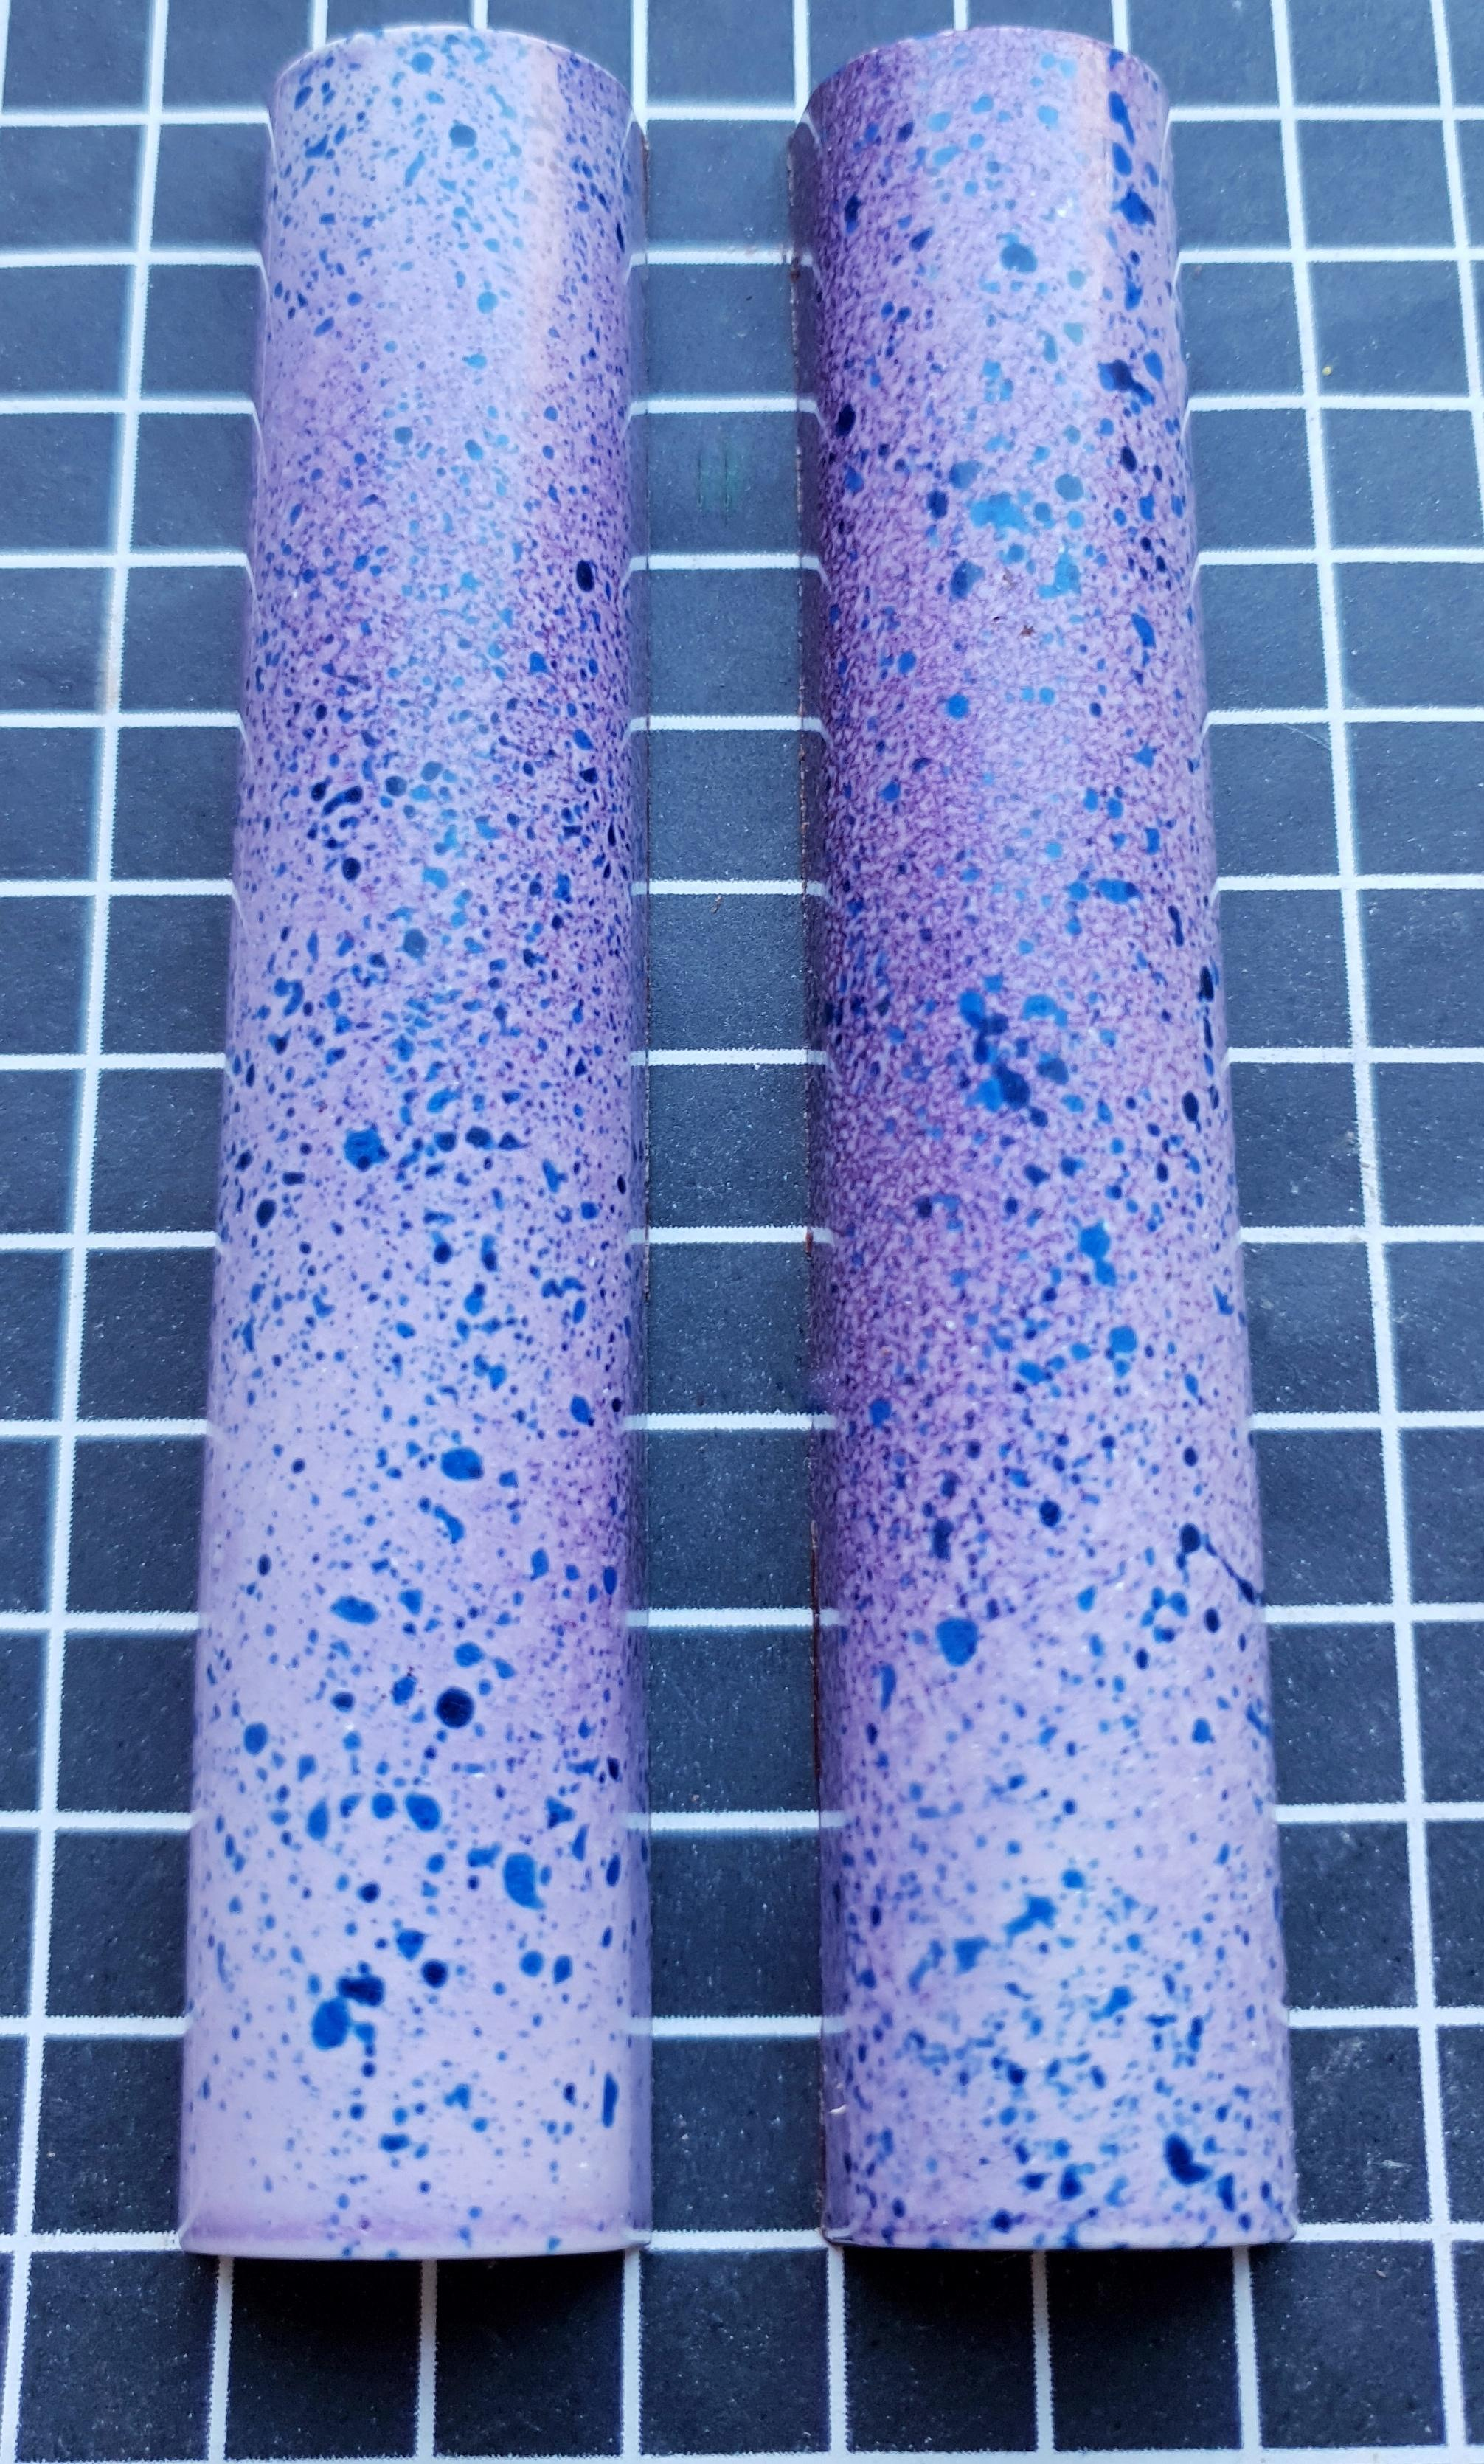 Blueberry and Violet Chocolate Bar